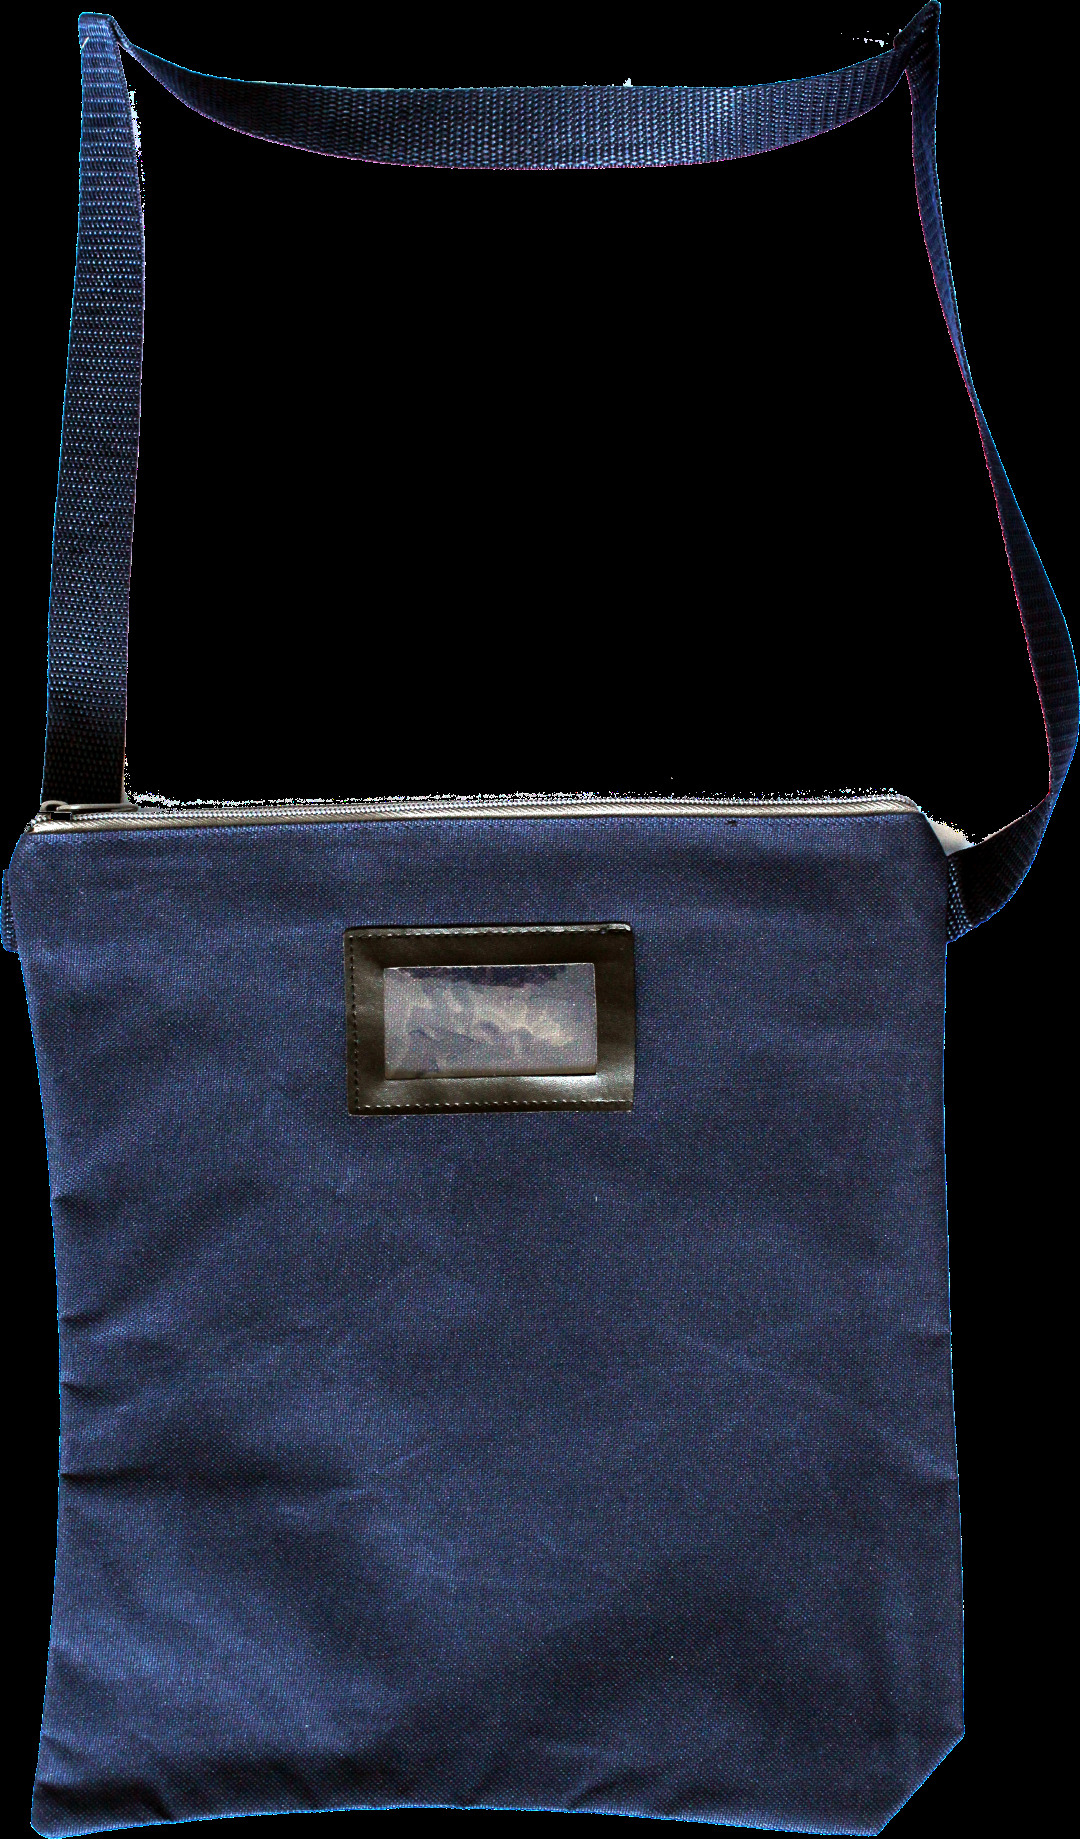 Library Book Bag (280 x 335mm)